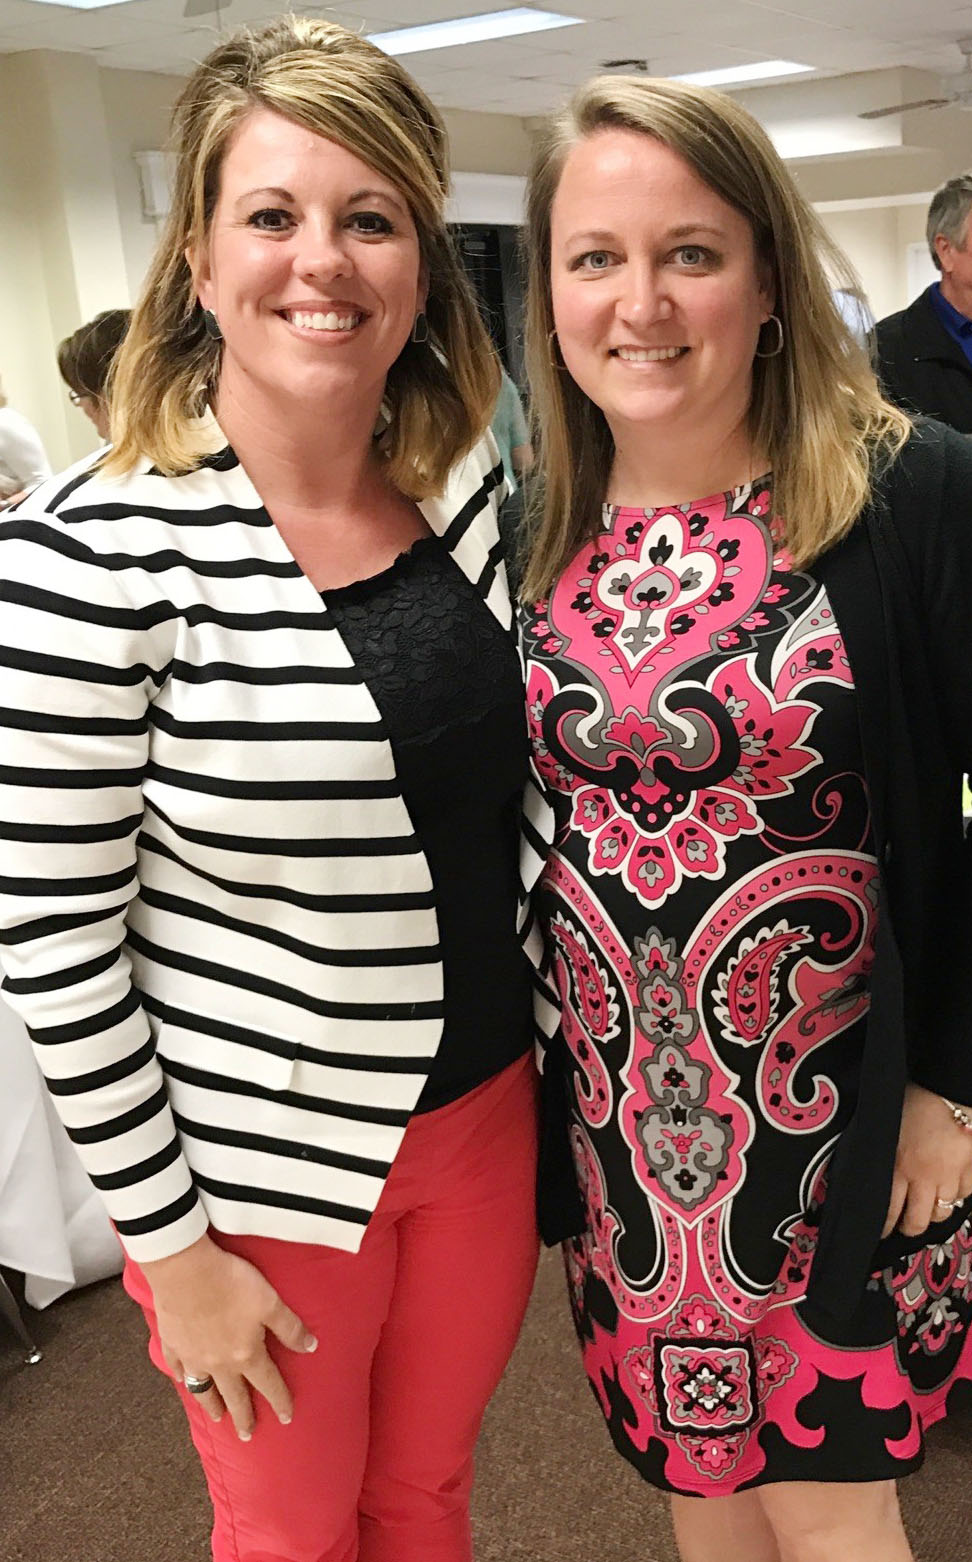 Katie Campbell, an exceptional child educator at CMS, is one of four teachers nominated for this year's Campbellsville/Taylor County Chamber of Commerce Educator of the Year award. The nominees were honored at the Chamber's annual banquet on Thursday, April 27. Campbell is pictured with CMS Principal Elisha Rhodes.